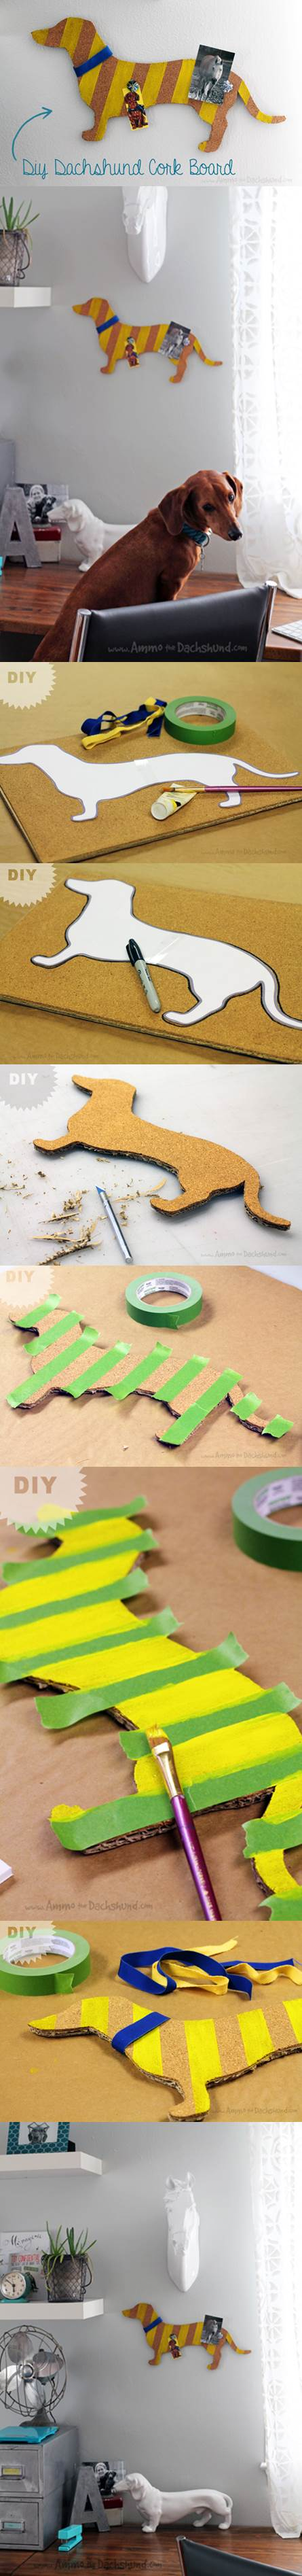 DIY Cork Board for Dogs 2